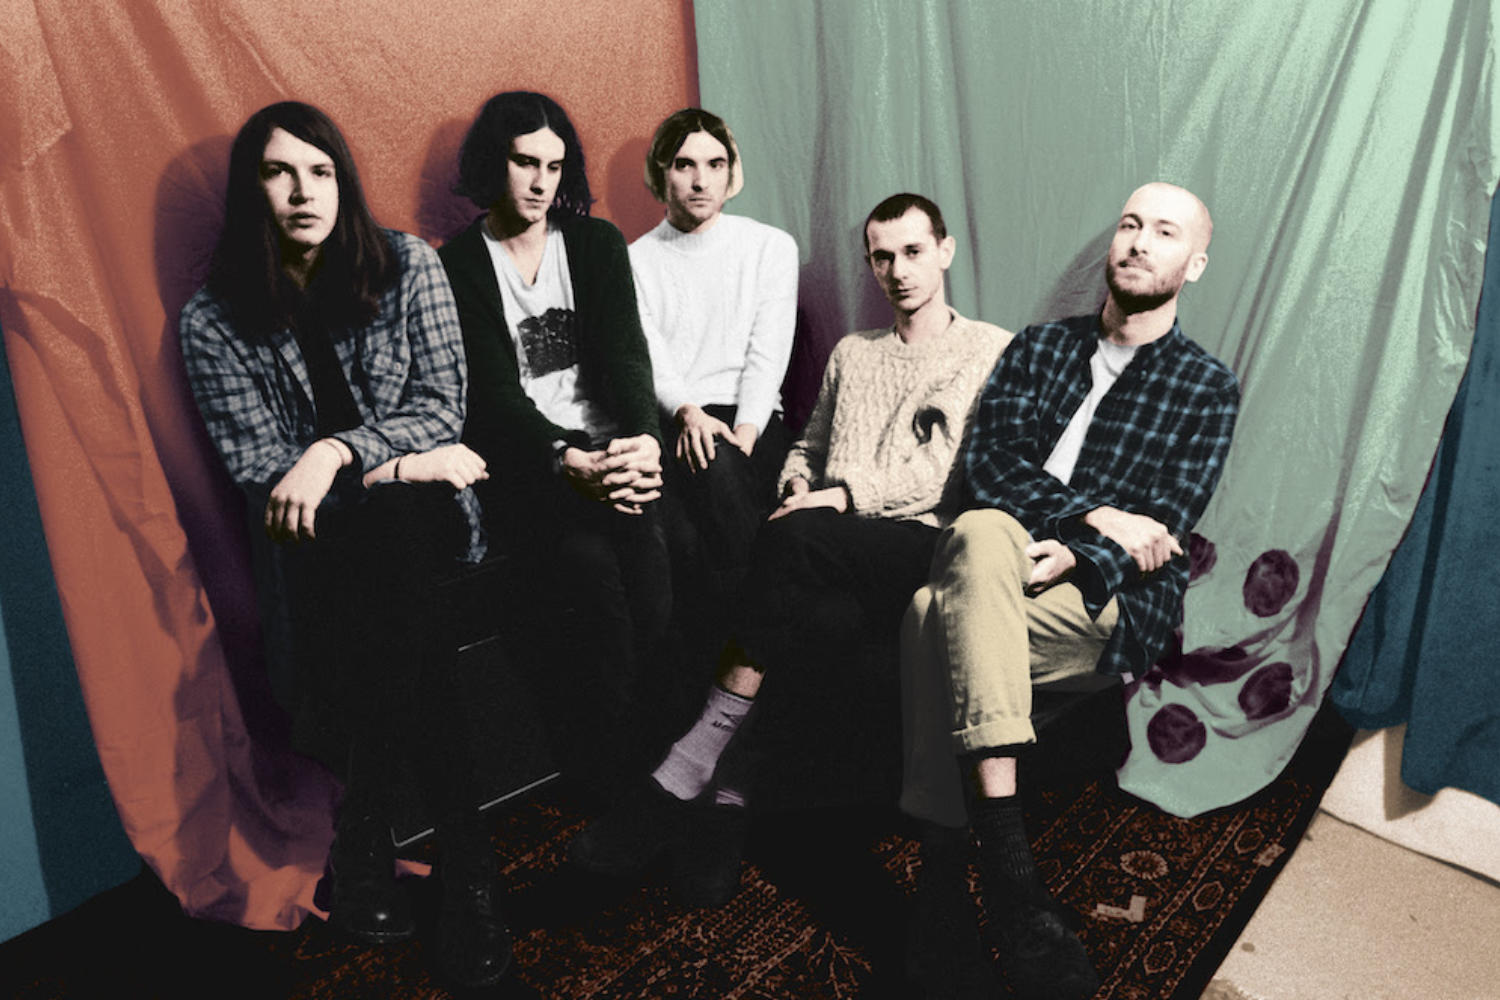 Ulrika Spacek have announced a UK tour